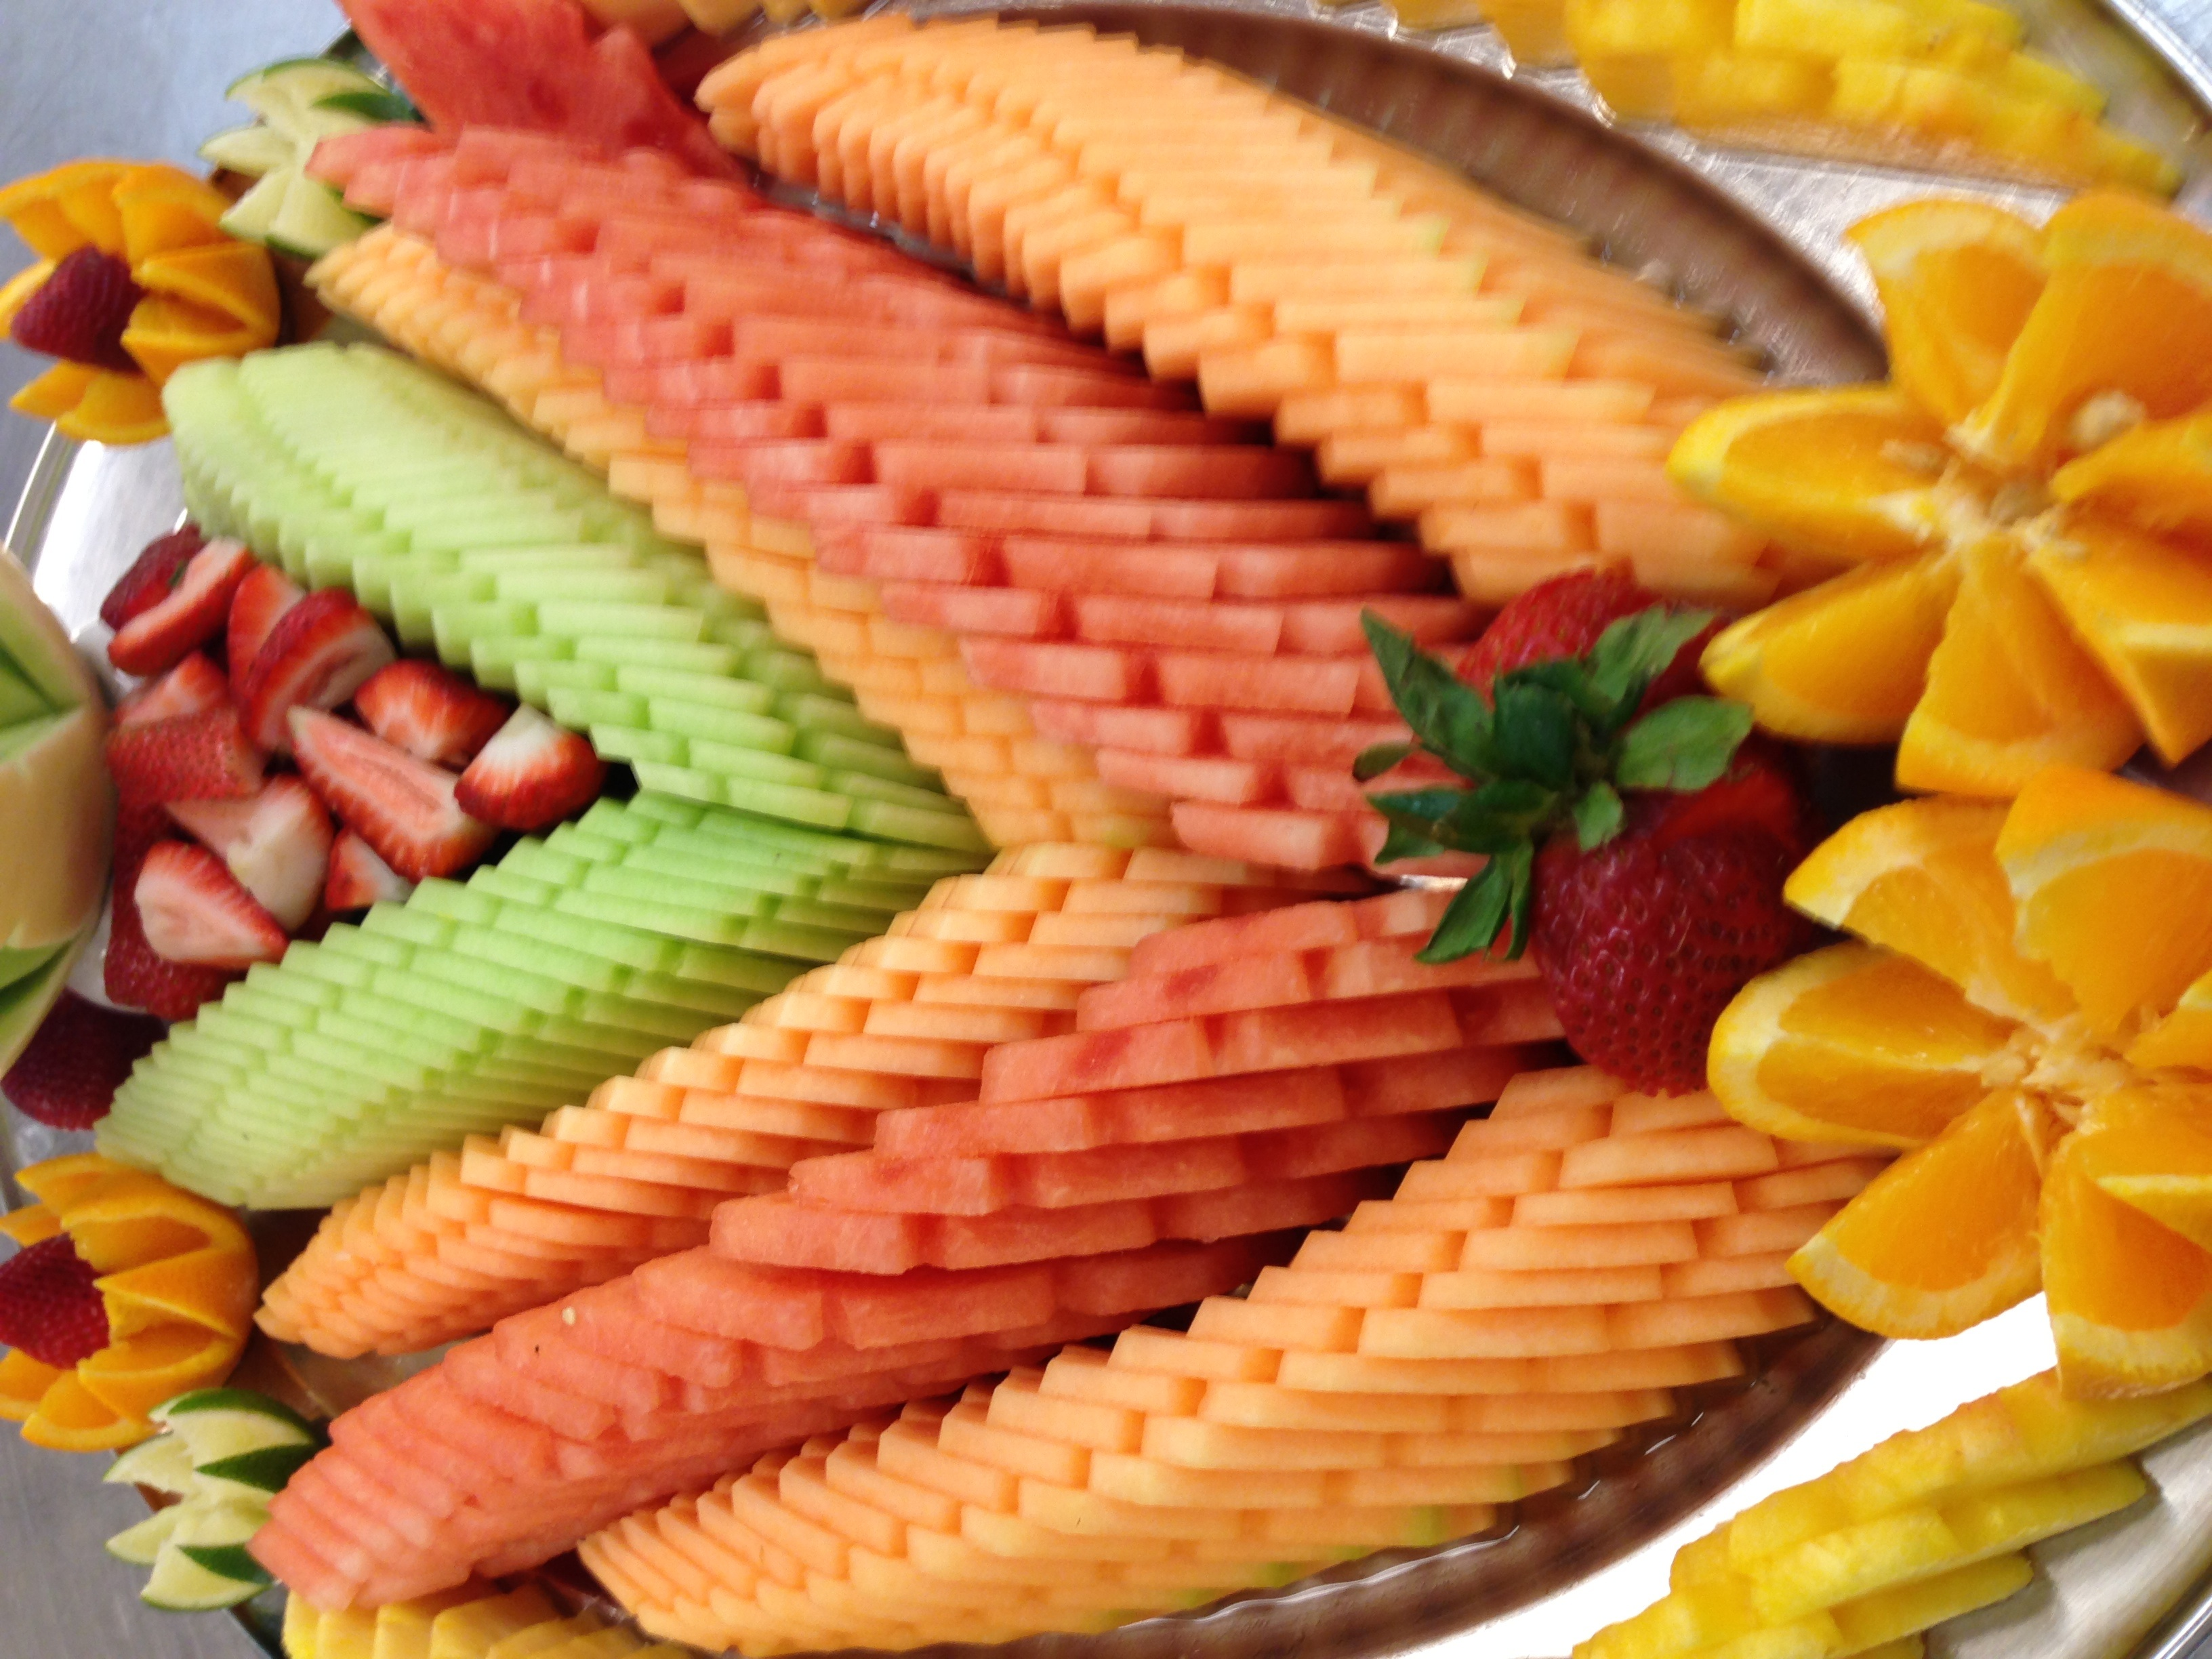 Sliced Watermelon buffet platter